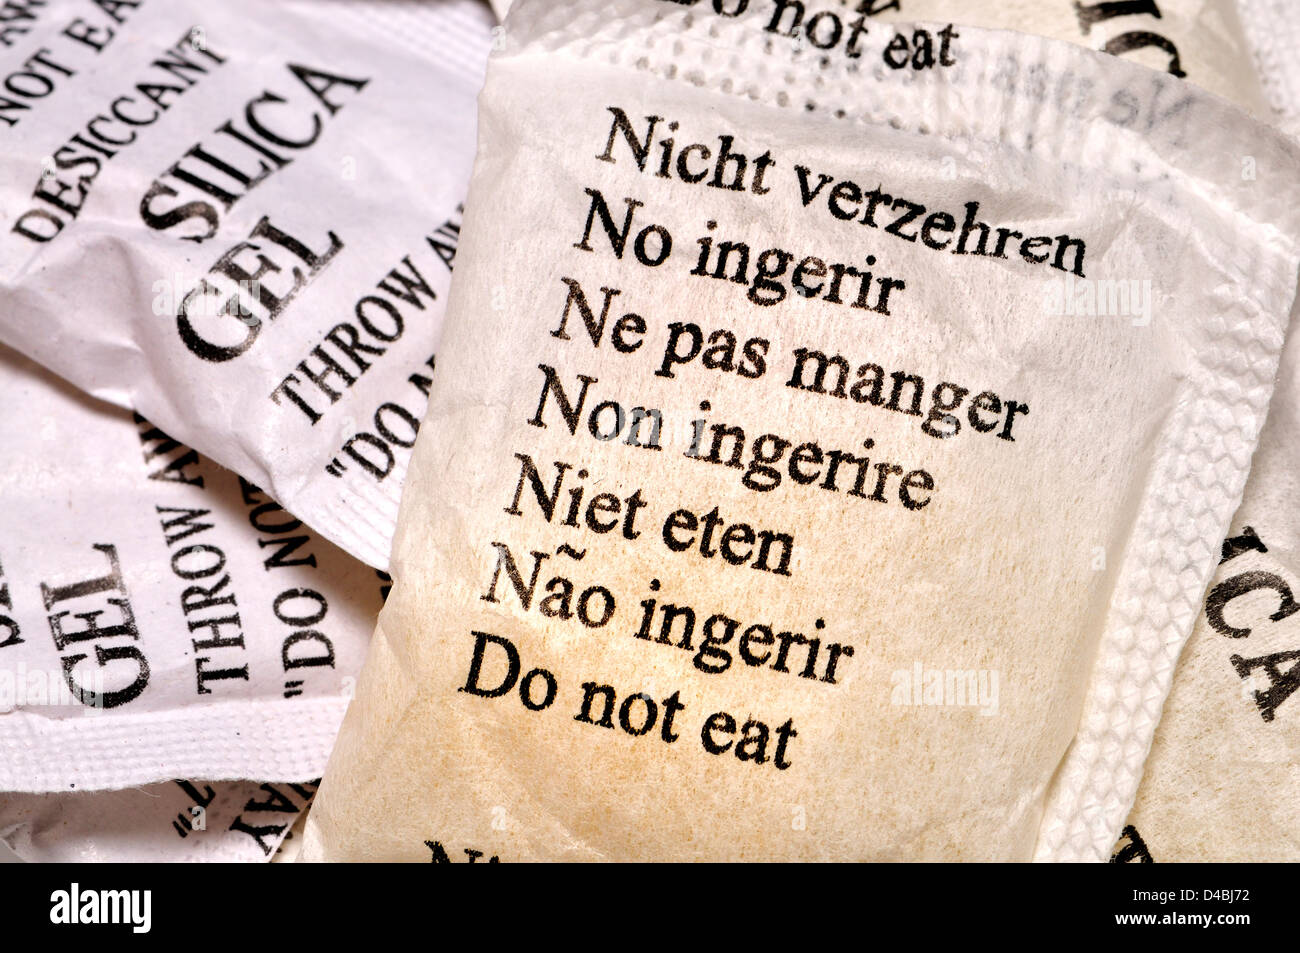 Multilingual instructions on sachet of silica gel. 'Do Not Eat in German, Spanish, French, Italian, Dutch, Portuguese, Stock Photo